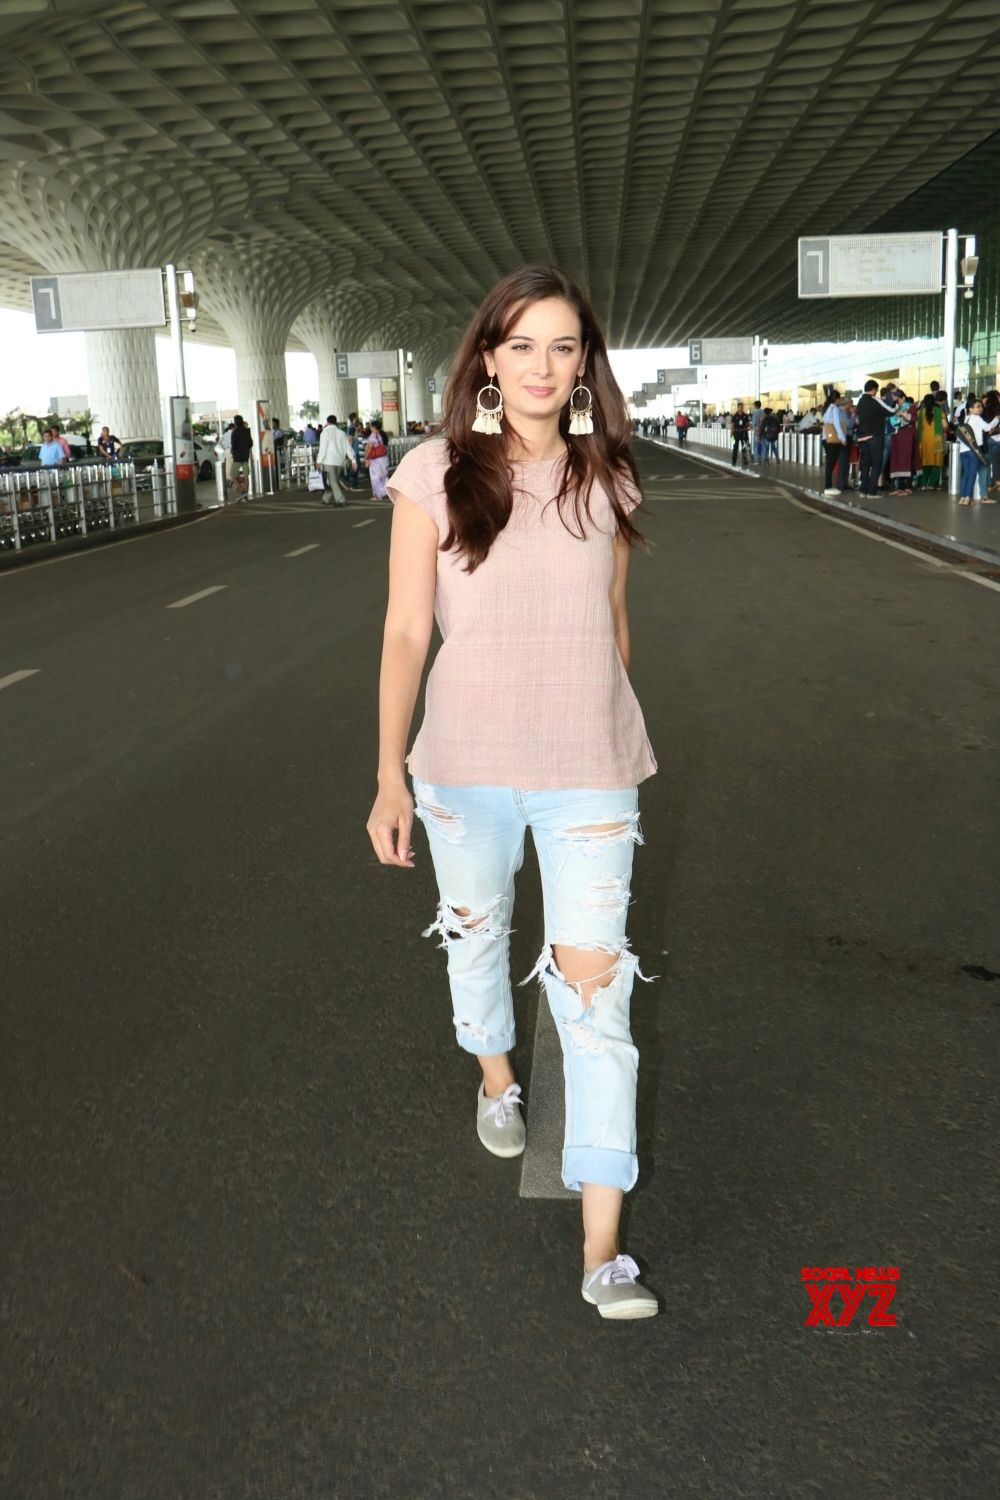 Mumbai: Evelyn Sharma spotted at airport